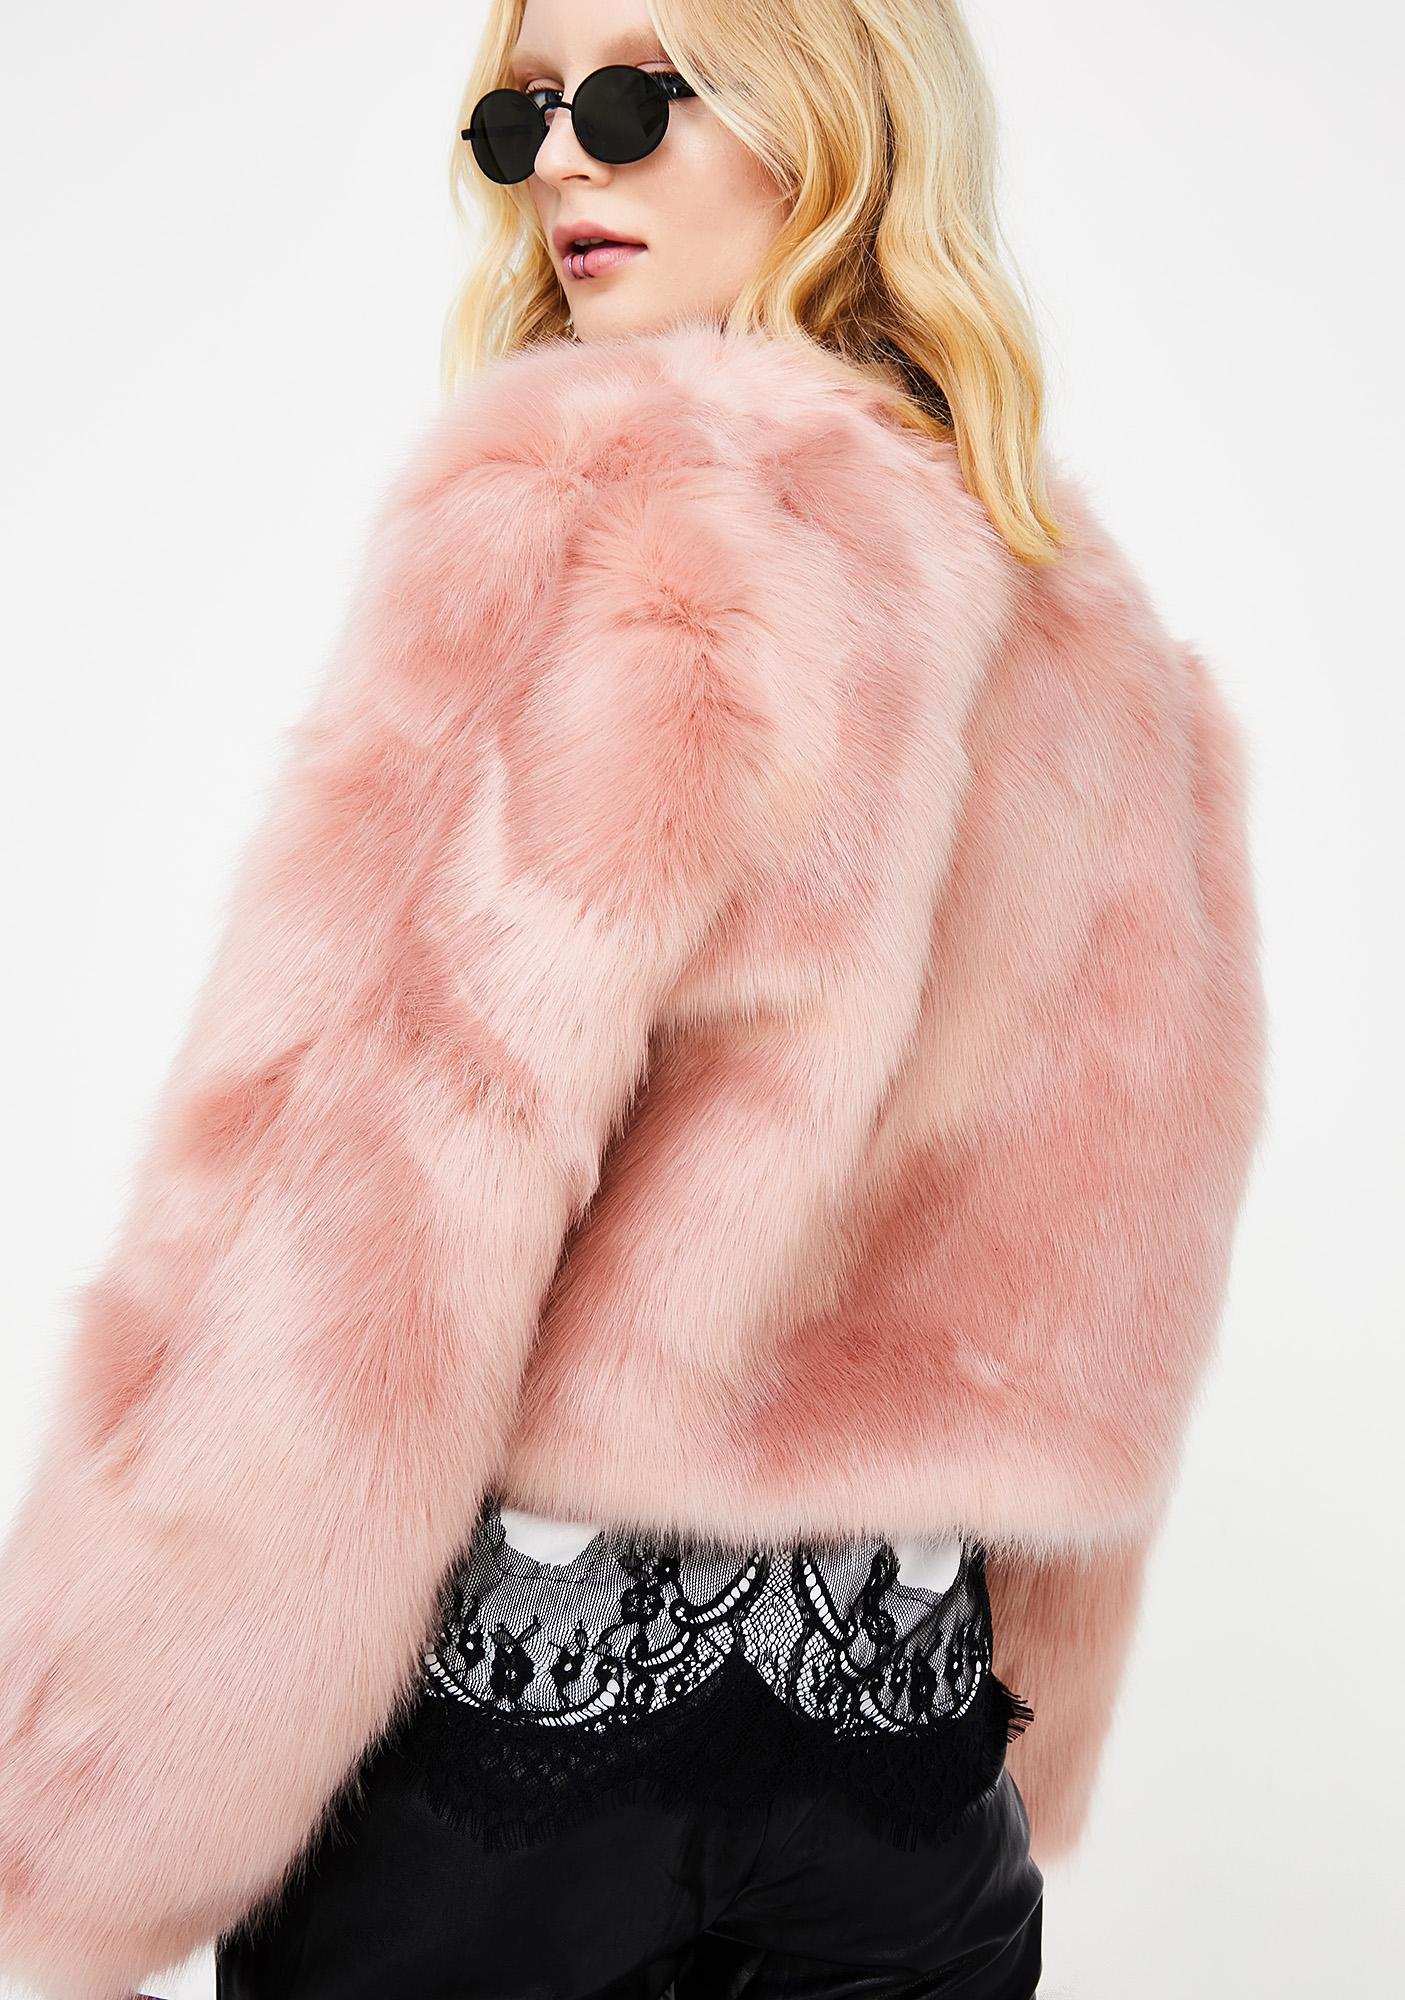 Prima Donna Furry Jacket